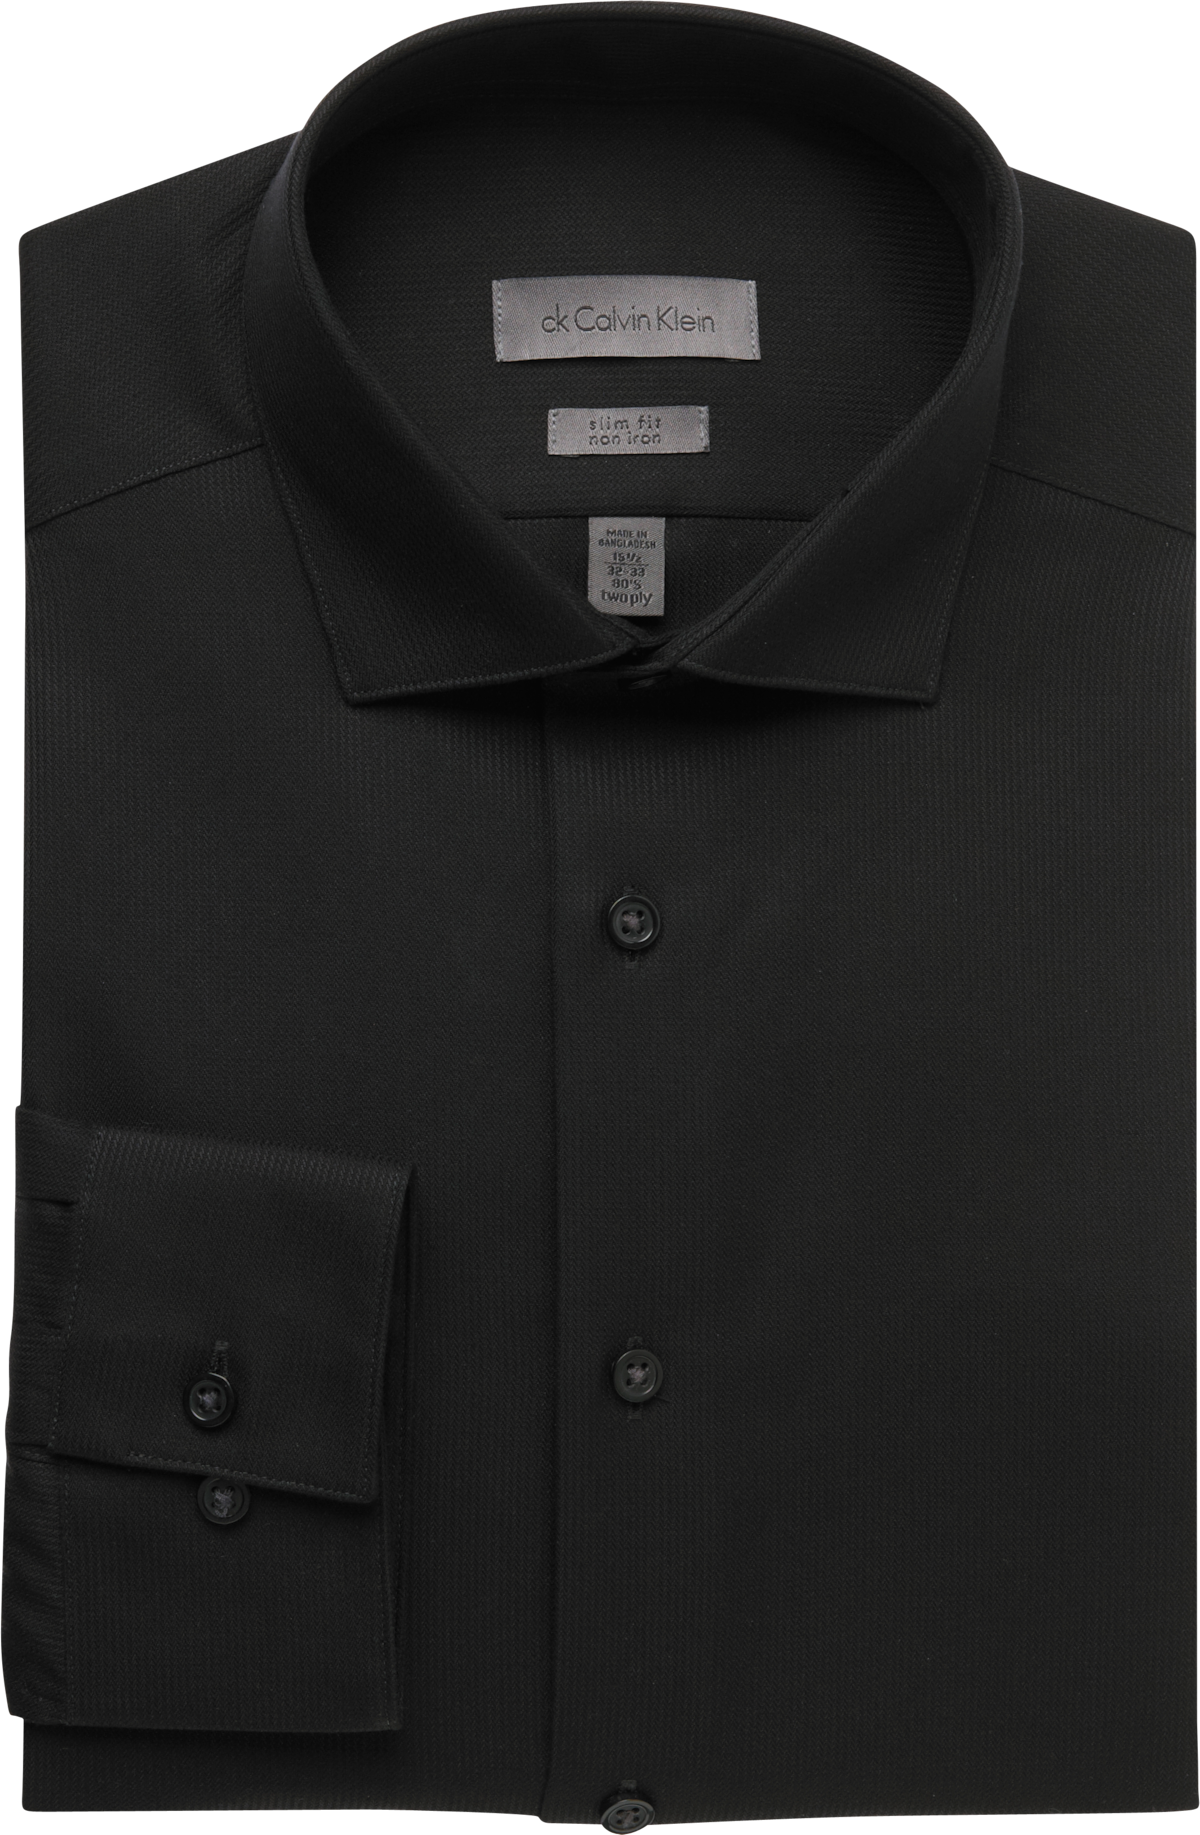 Calvin Klein Black Slim Fit Non-Iron Dress Shirt - Men's Slim Fit ...